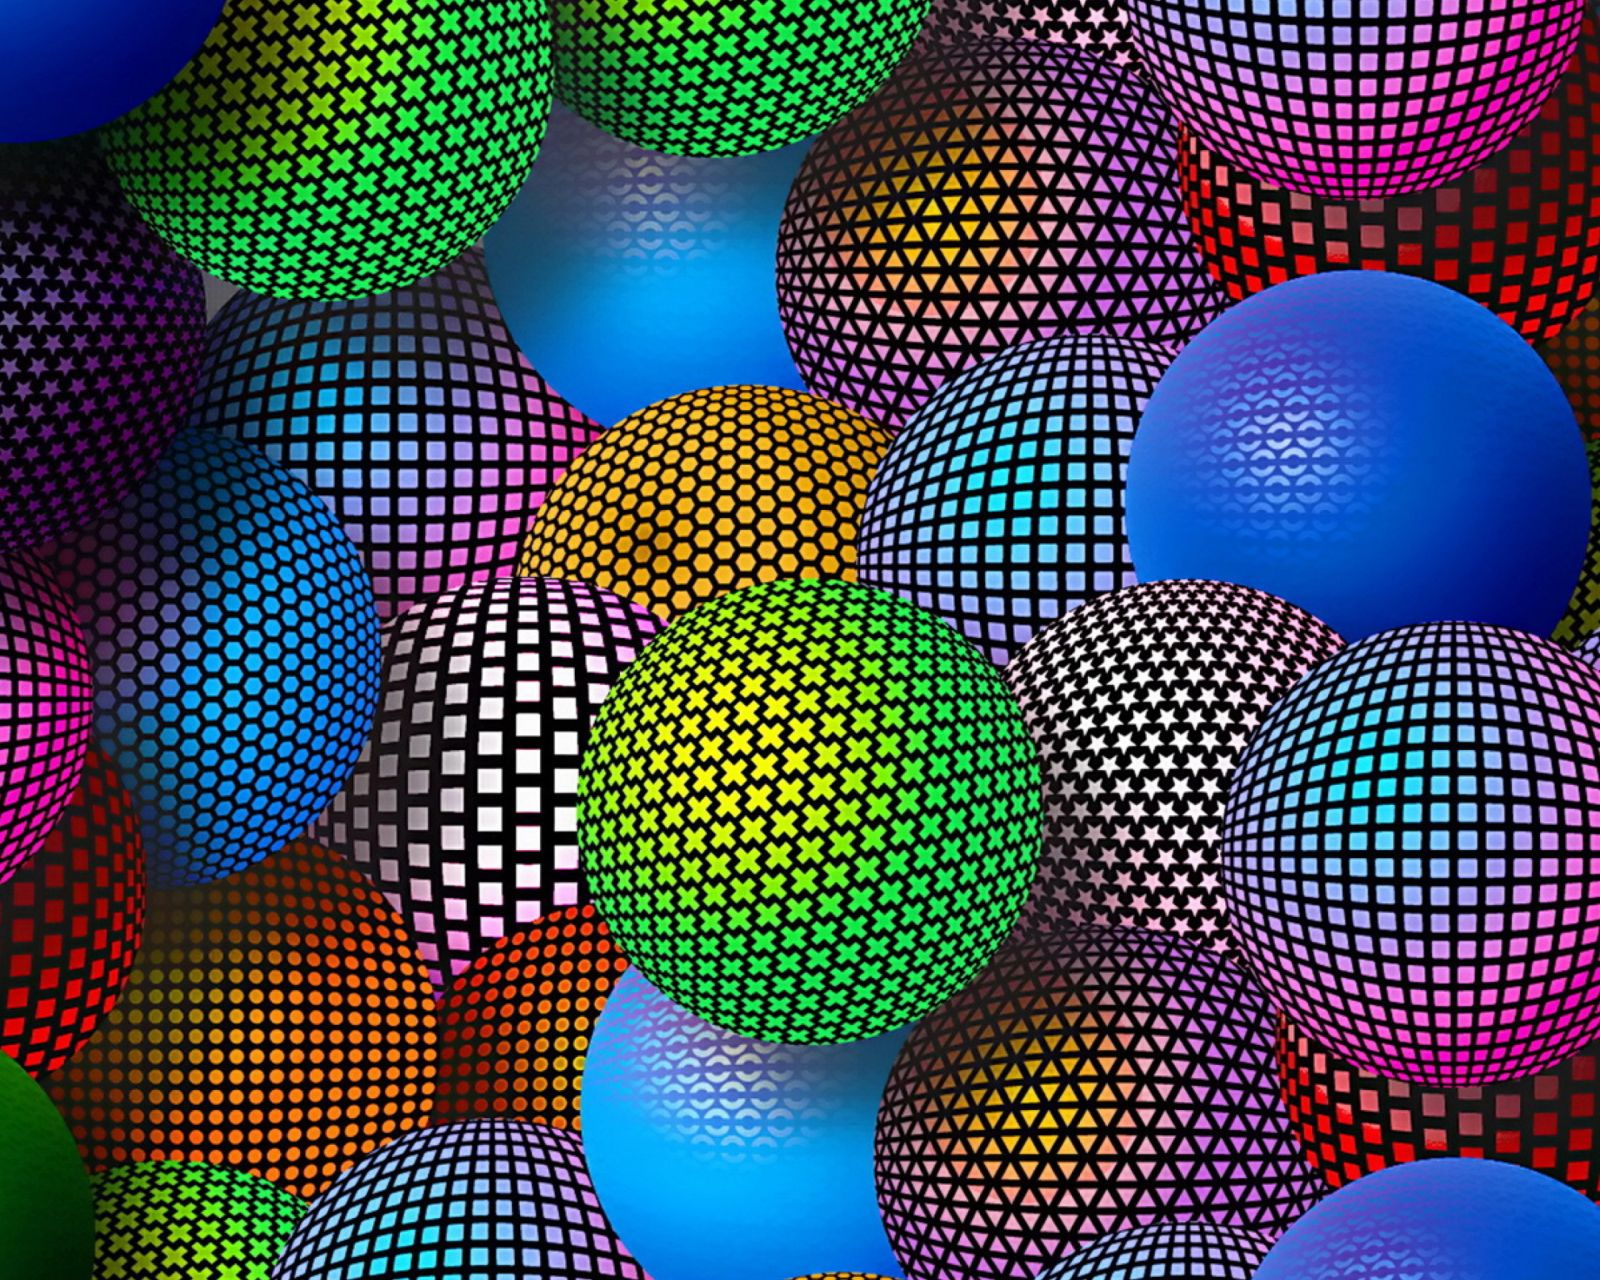 3D Neon Balls Wallpaper For Samsung Galaxy Tab 4 8.0